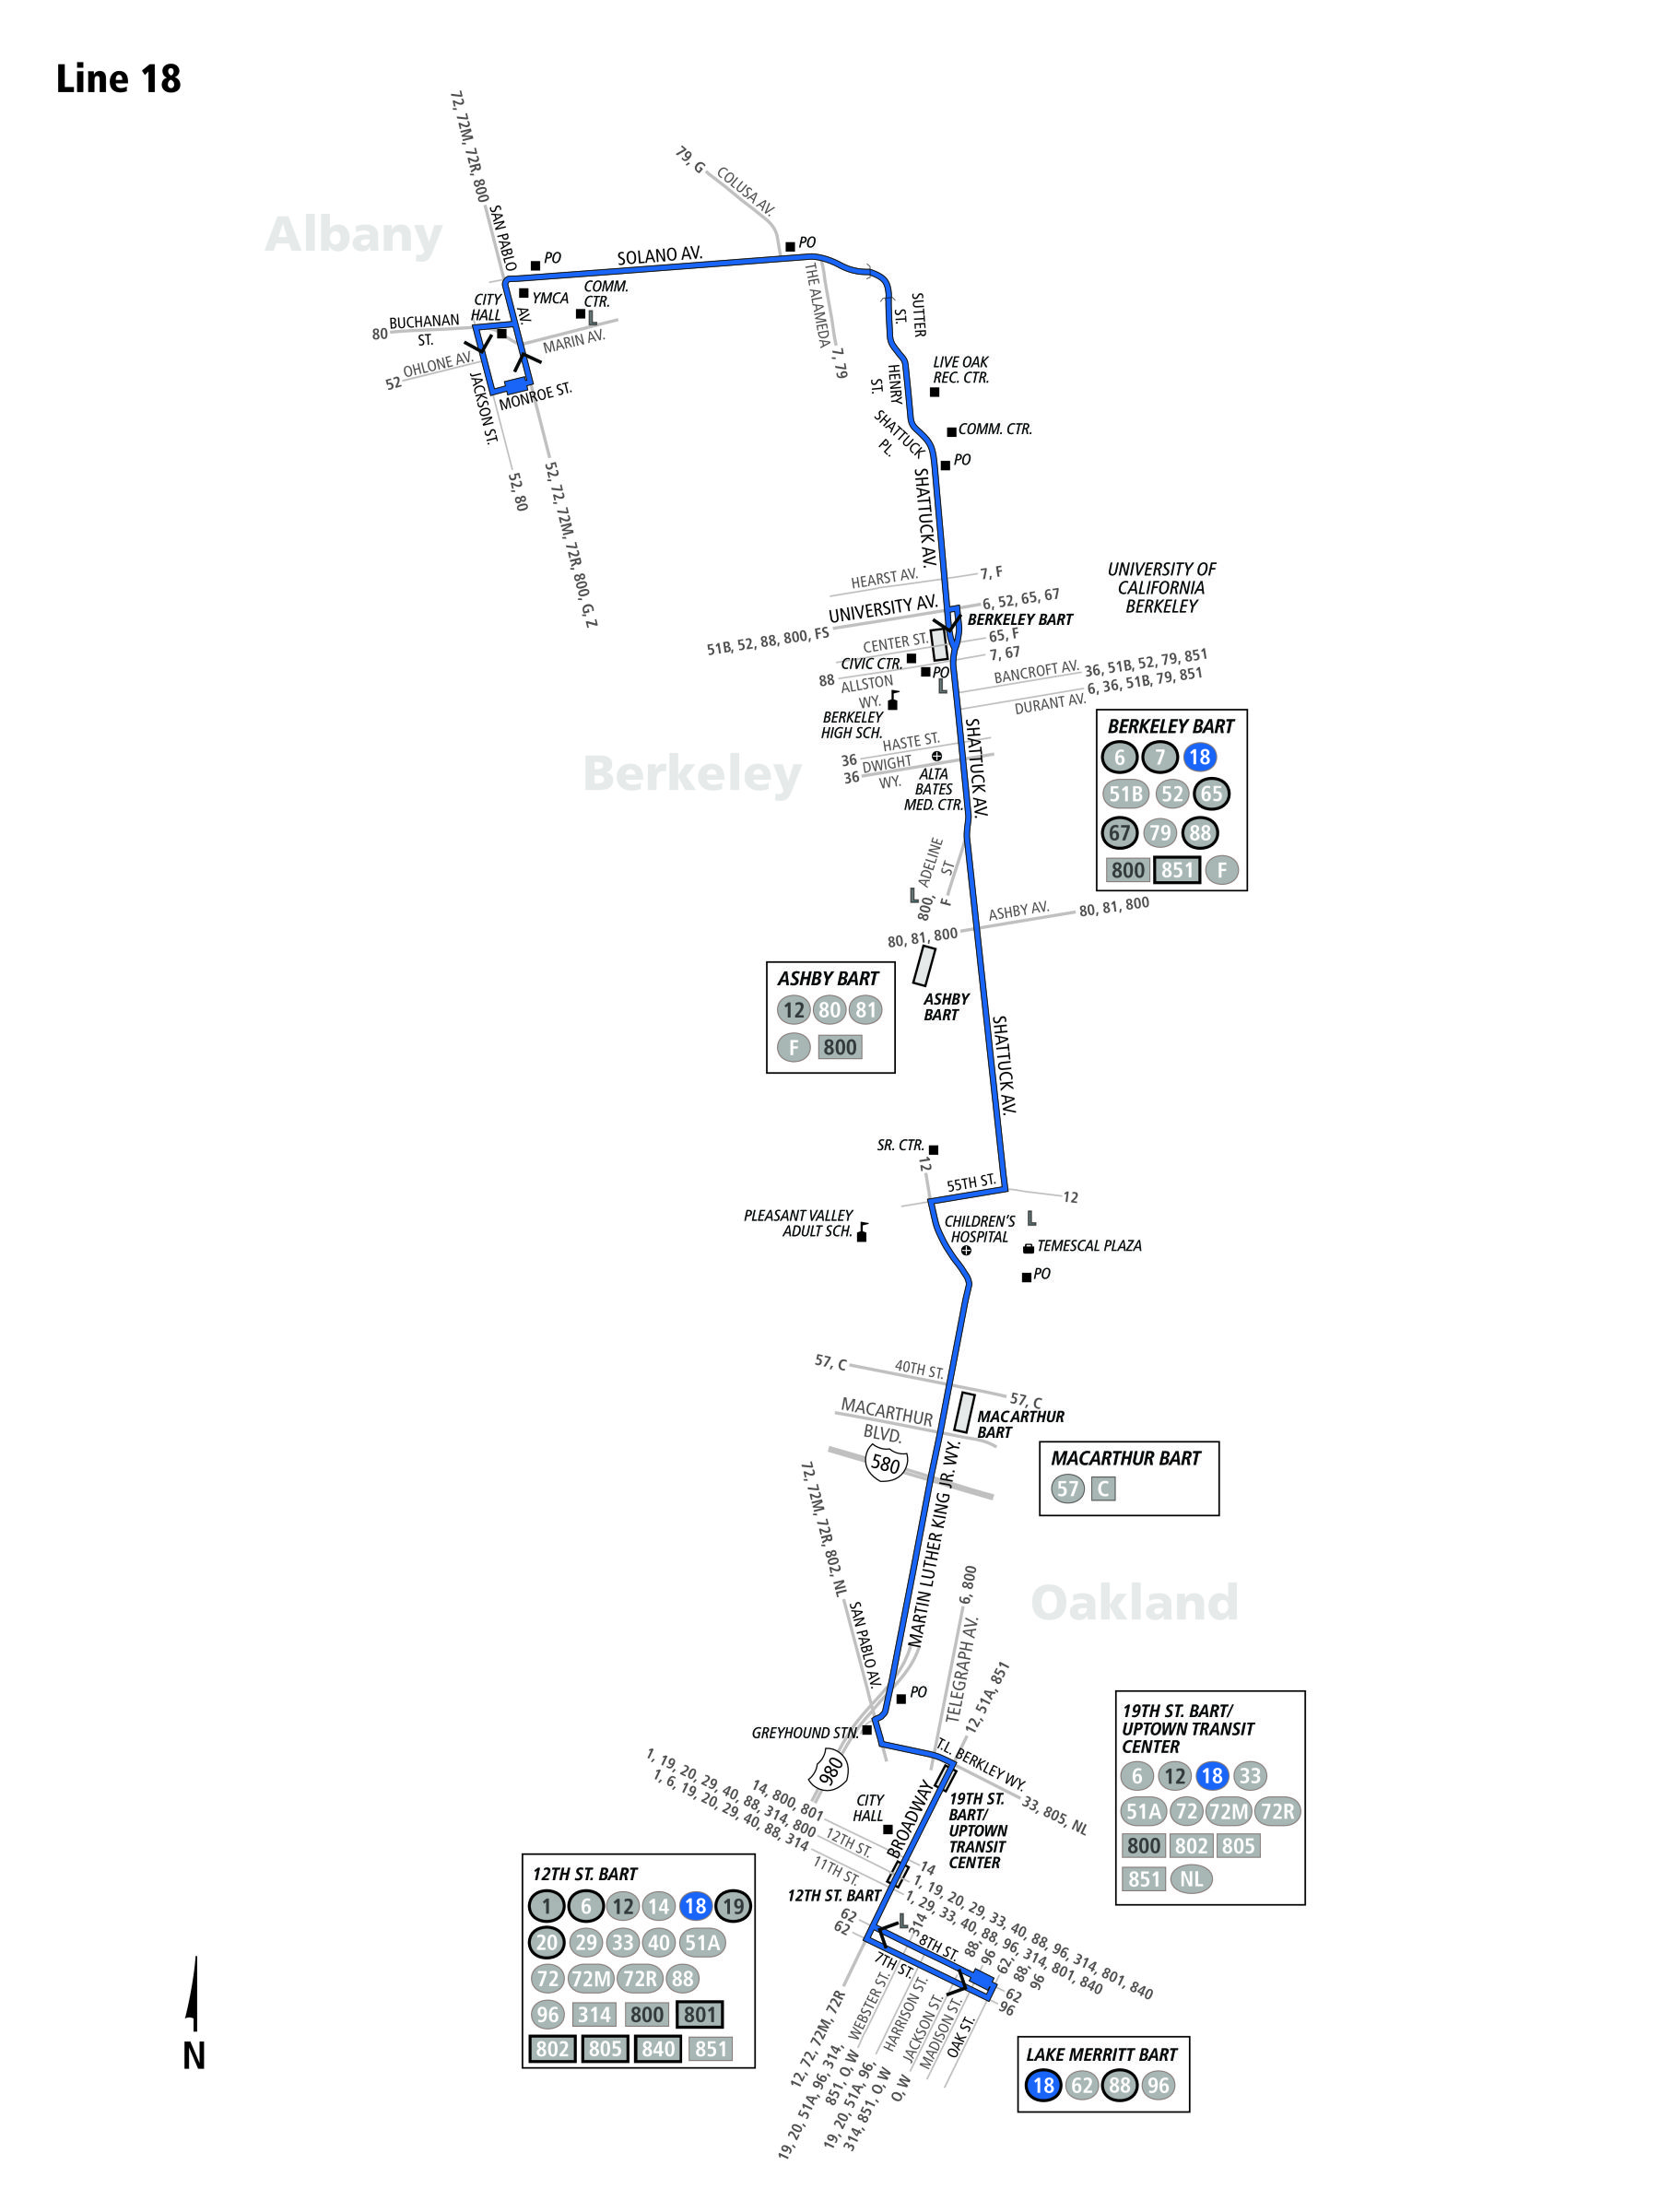 route_18  Berkerley Bus Route Ac Transit Map on